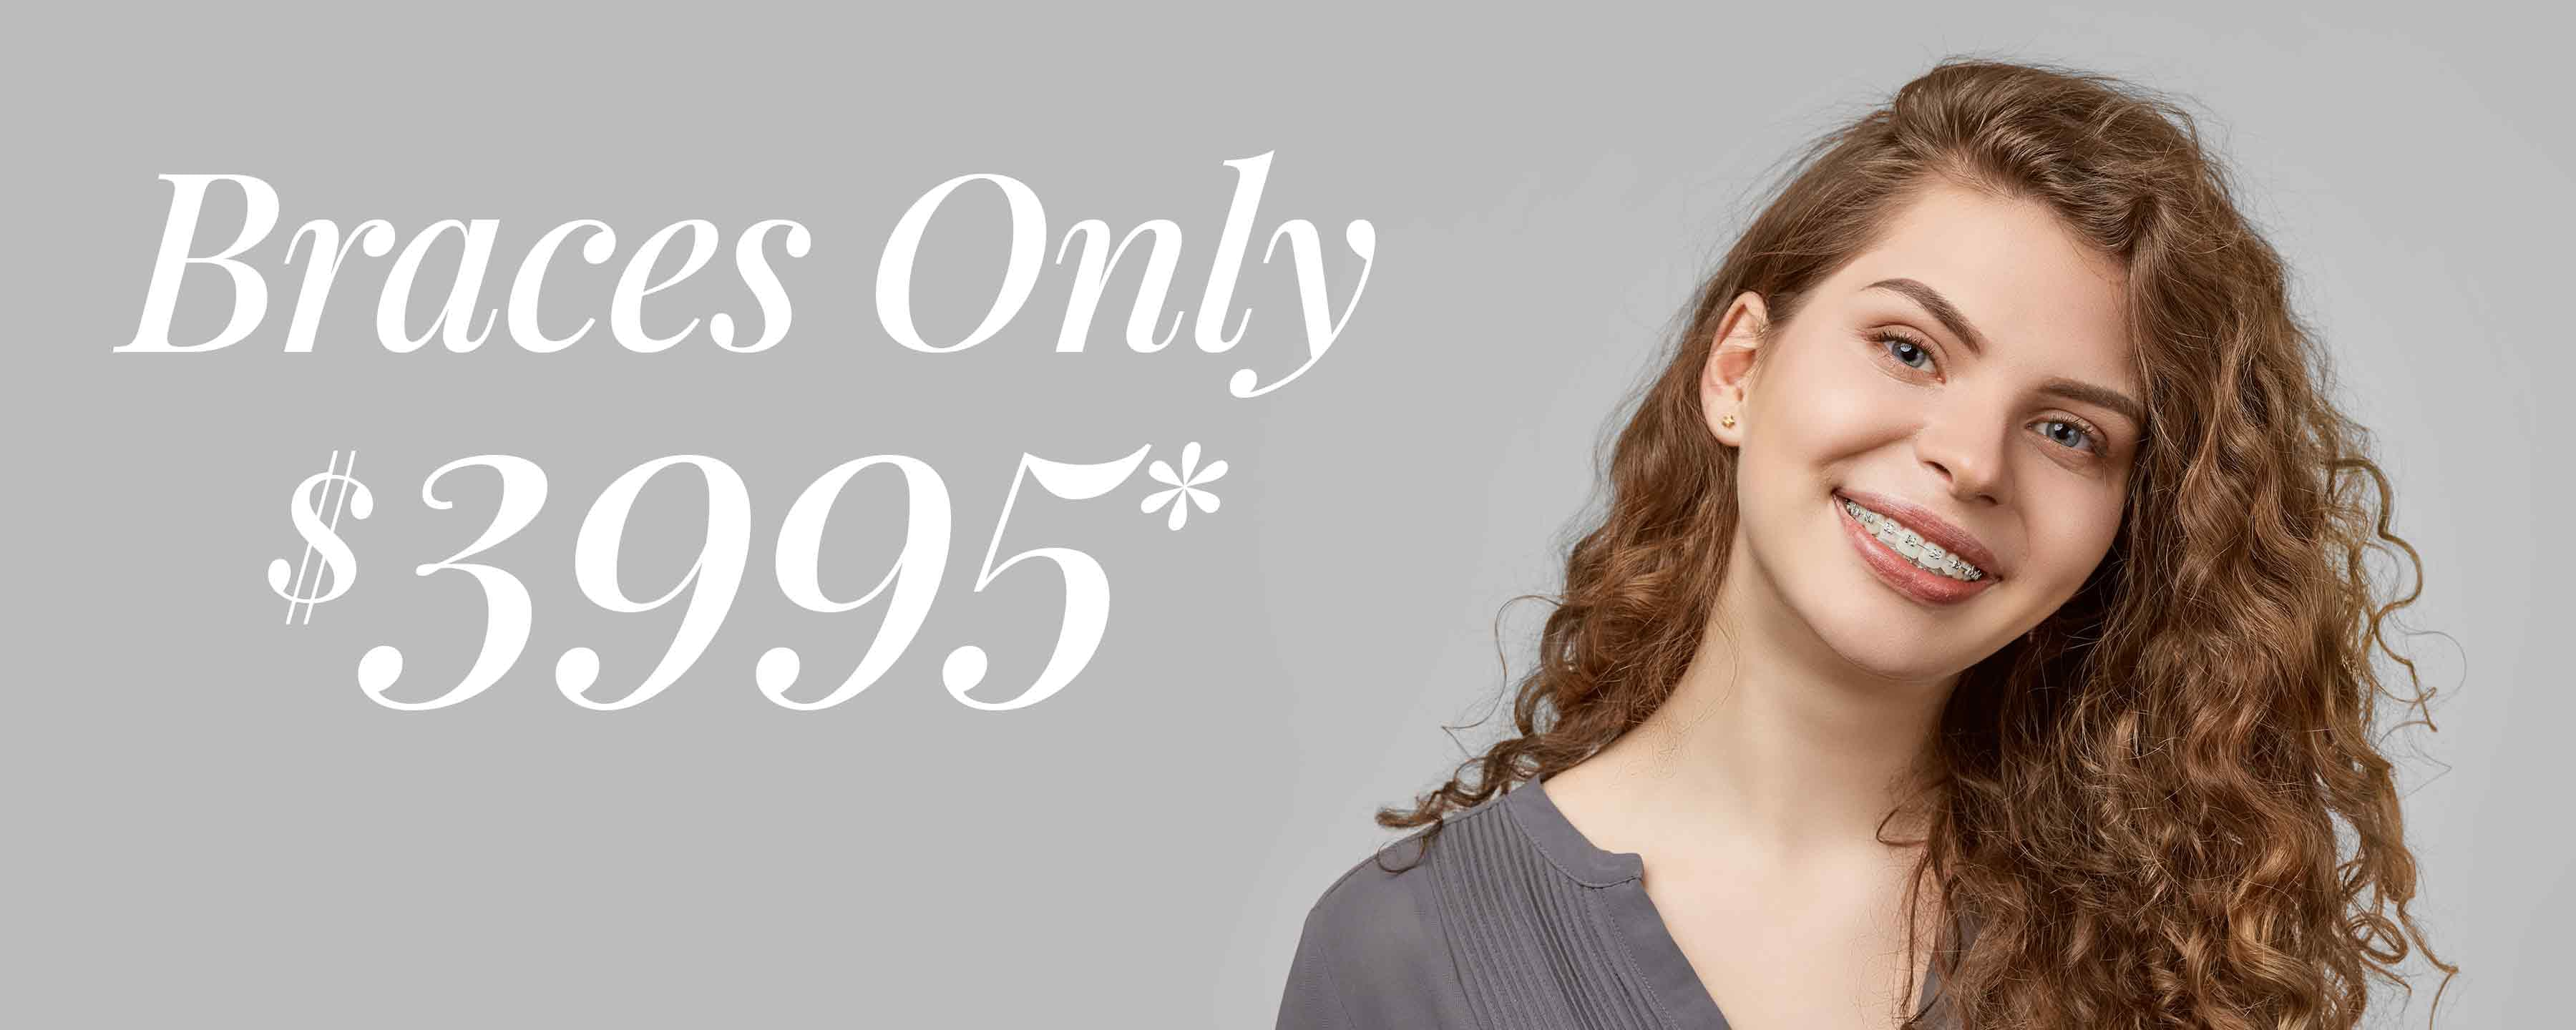 Braces Only $3,995*